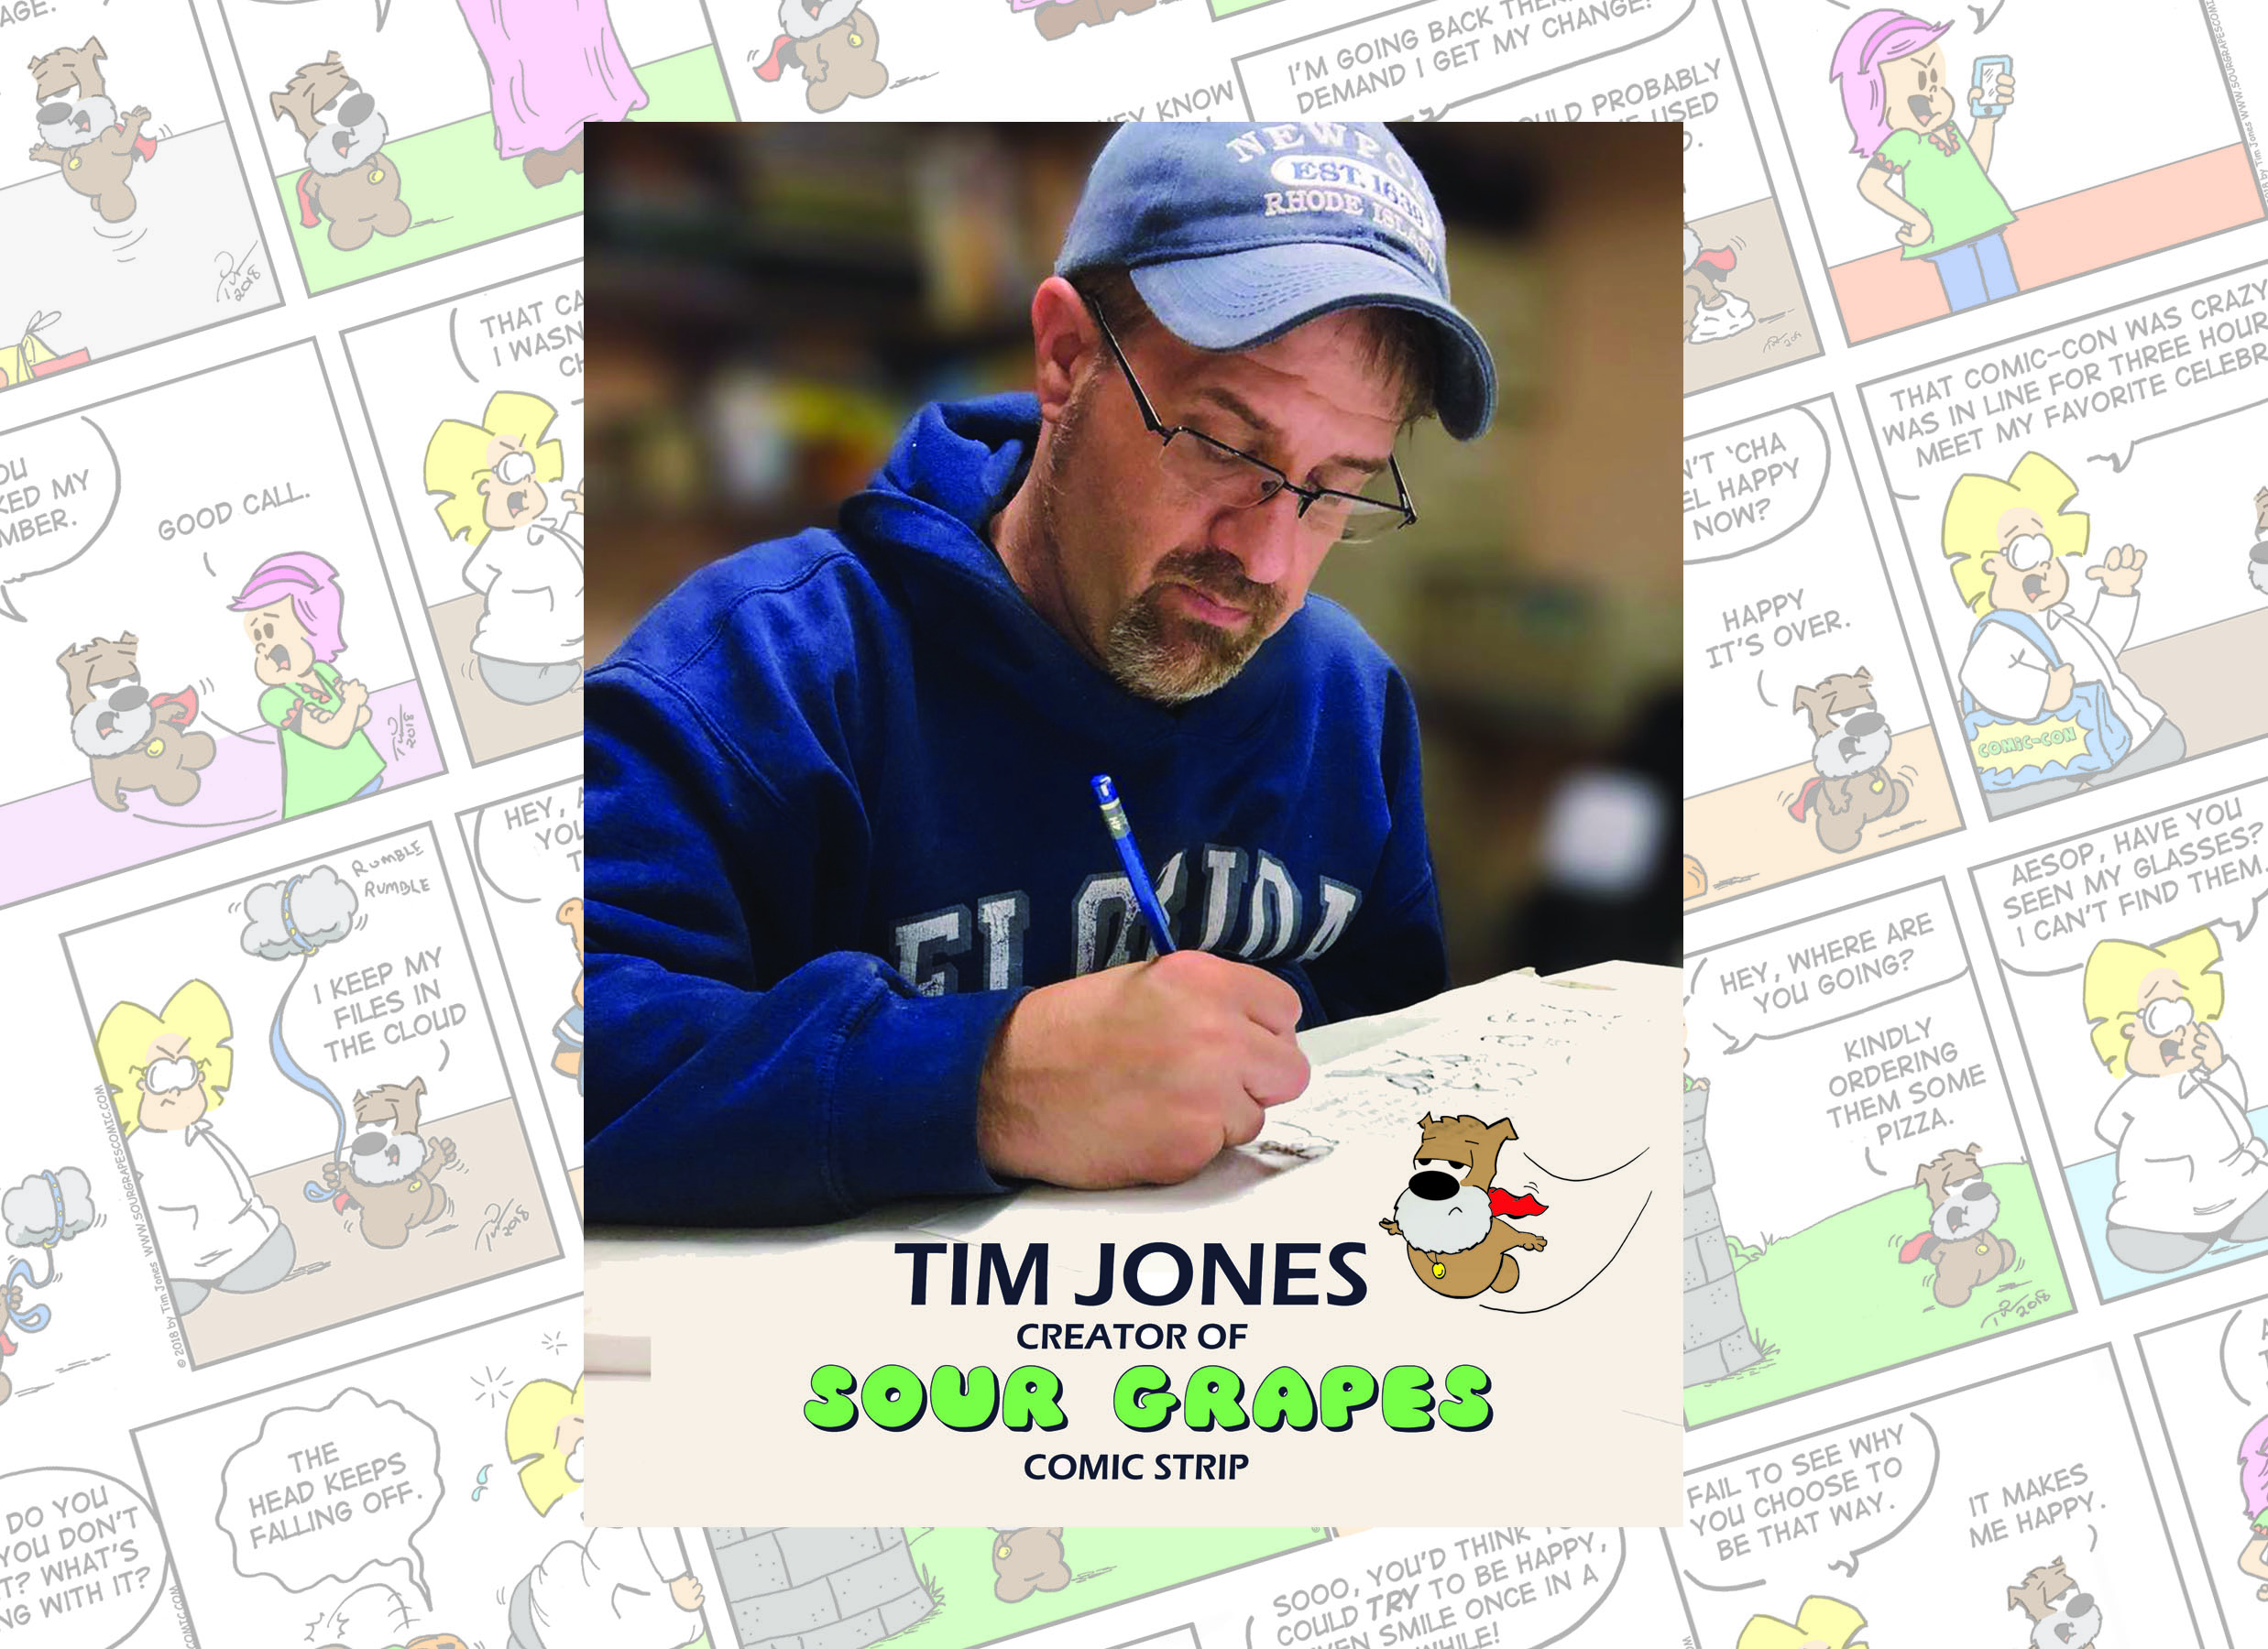 TIM JONES - July 2-4, 2021 Show